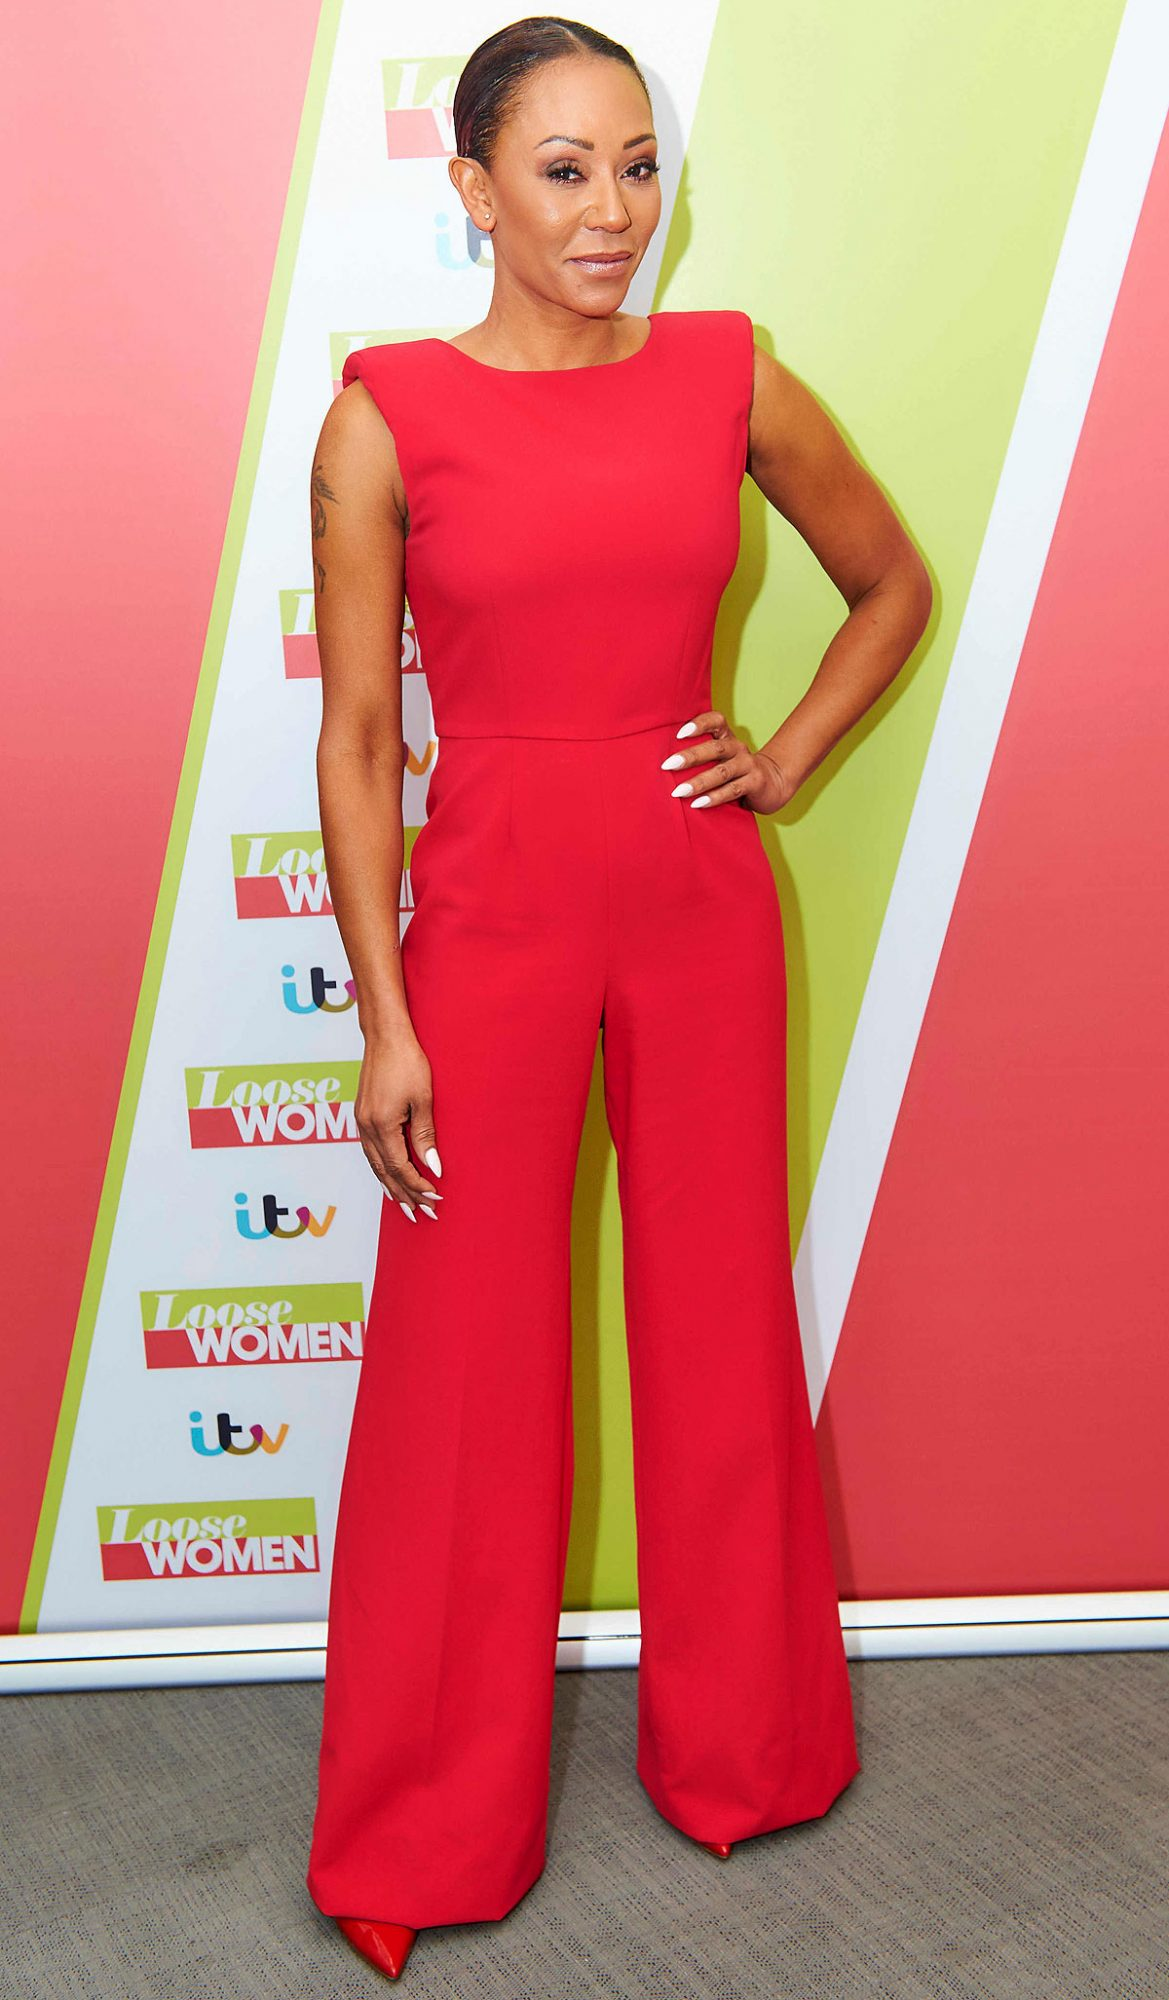 'Loose Women' TV show, London, UK - 09 May 2018